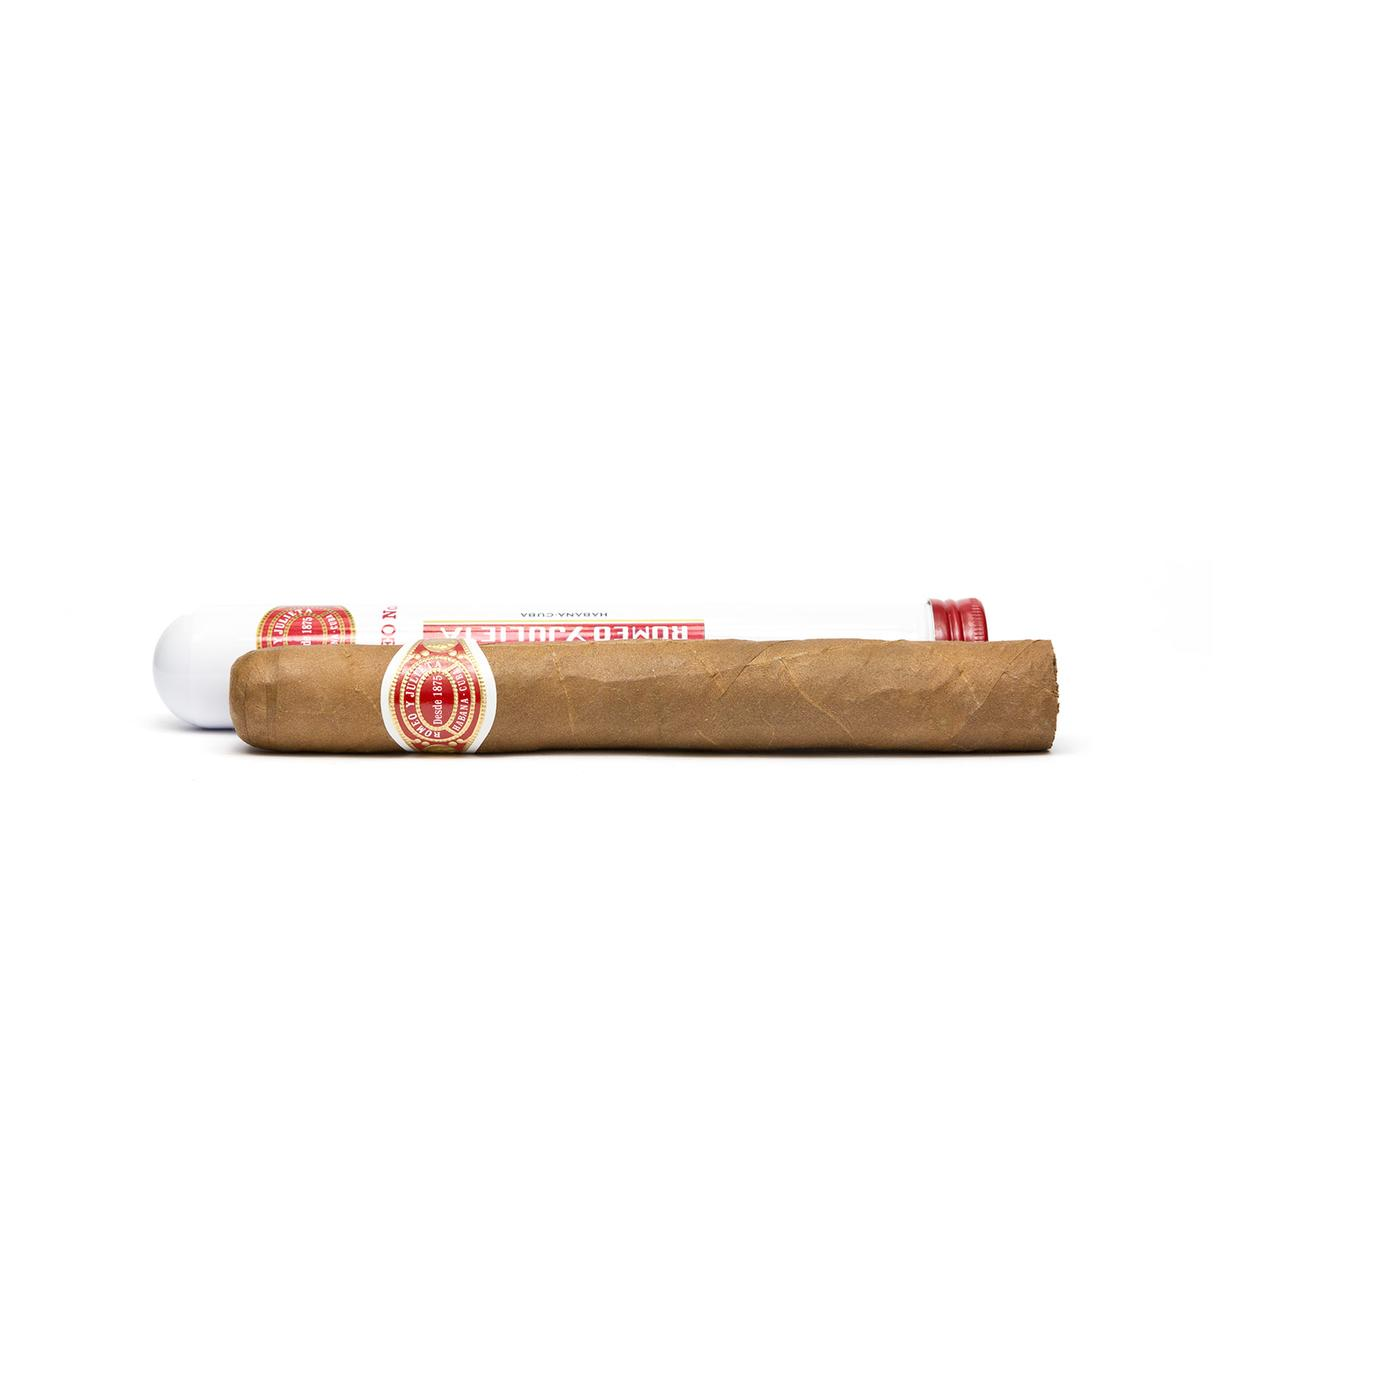 Romeo y Julieta No. 2